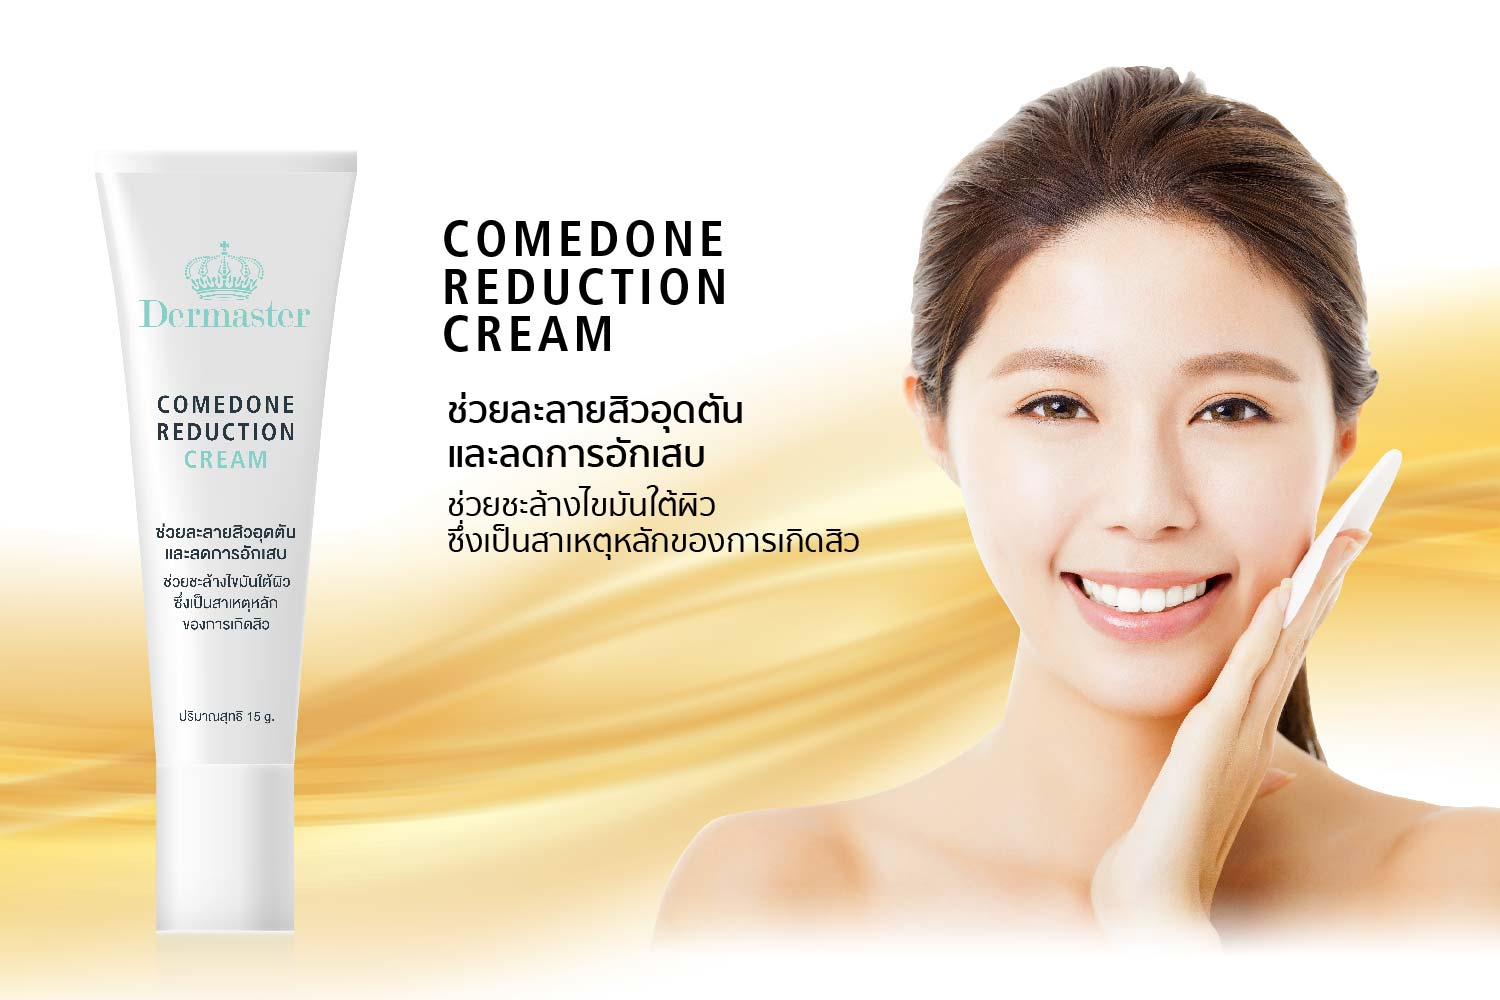 skin-care-comedone-reduction-cream-1